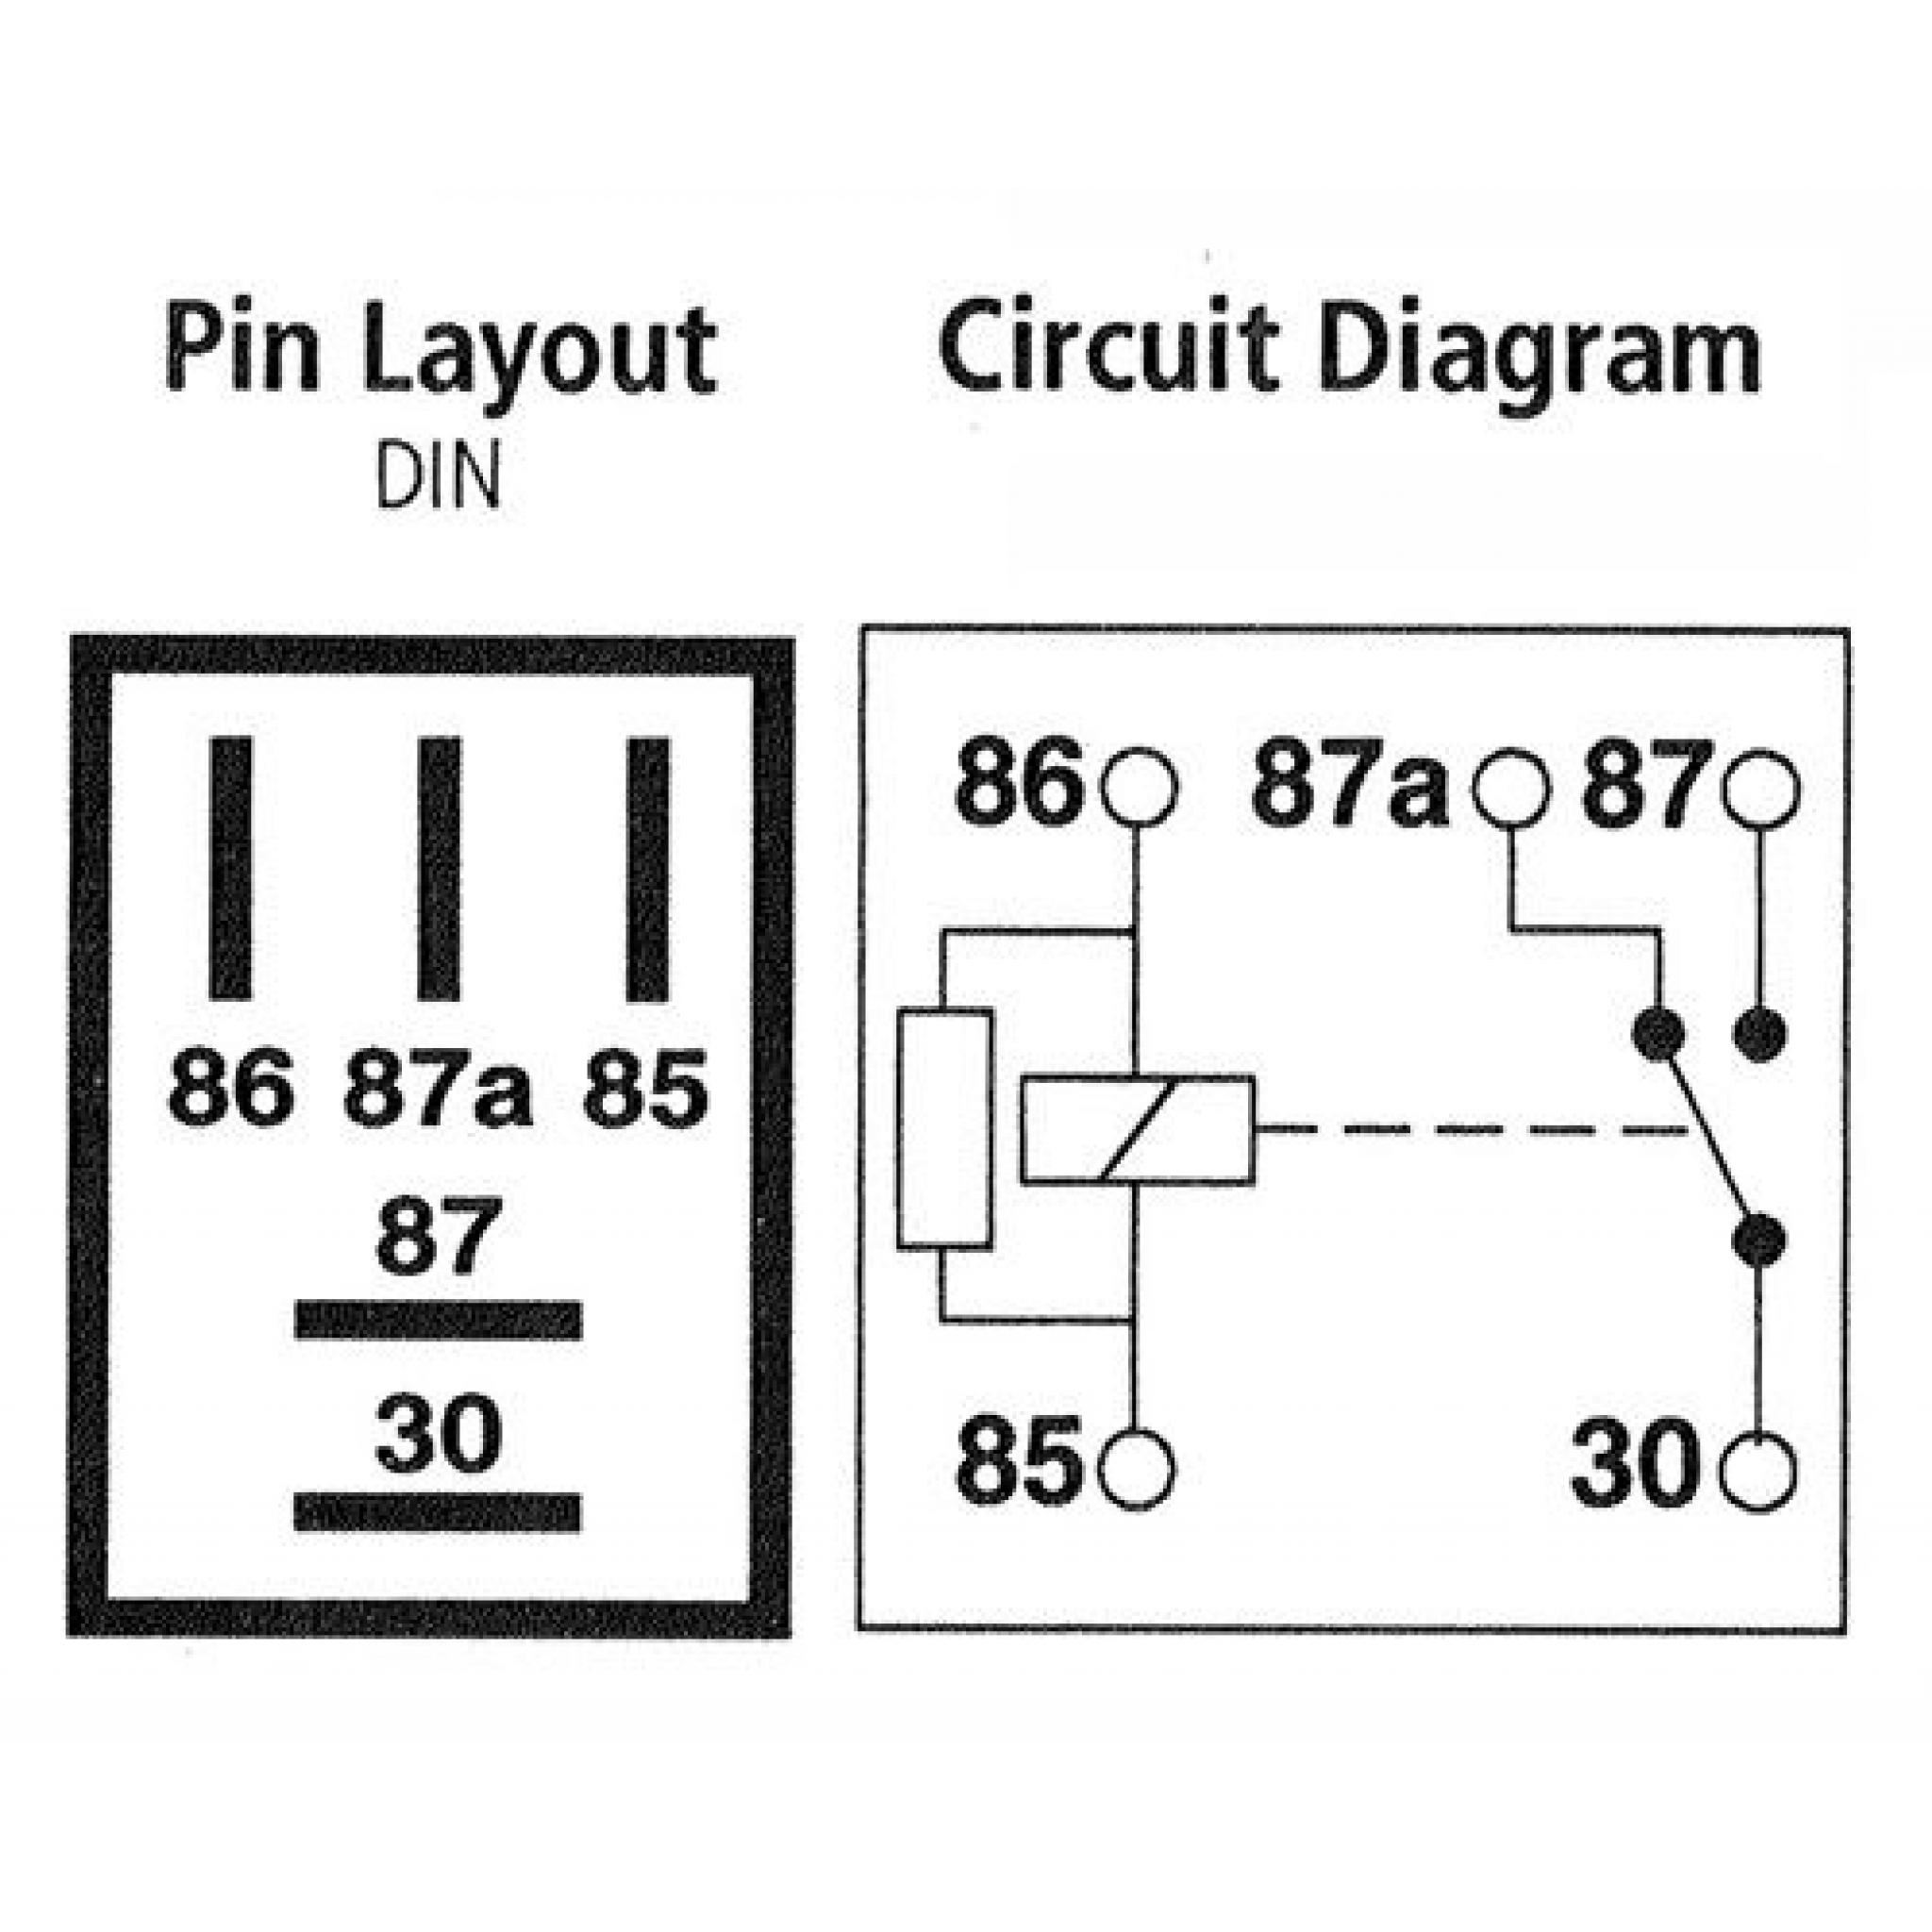 5 Pin Relay Wiring Diagram 87A from bits4work-static.myshopblocks.com